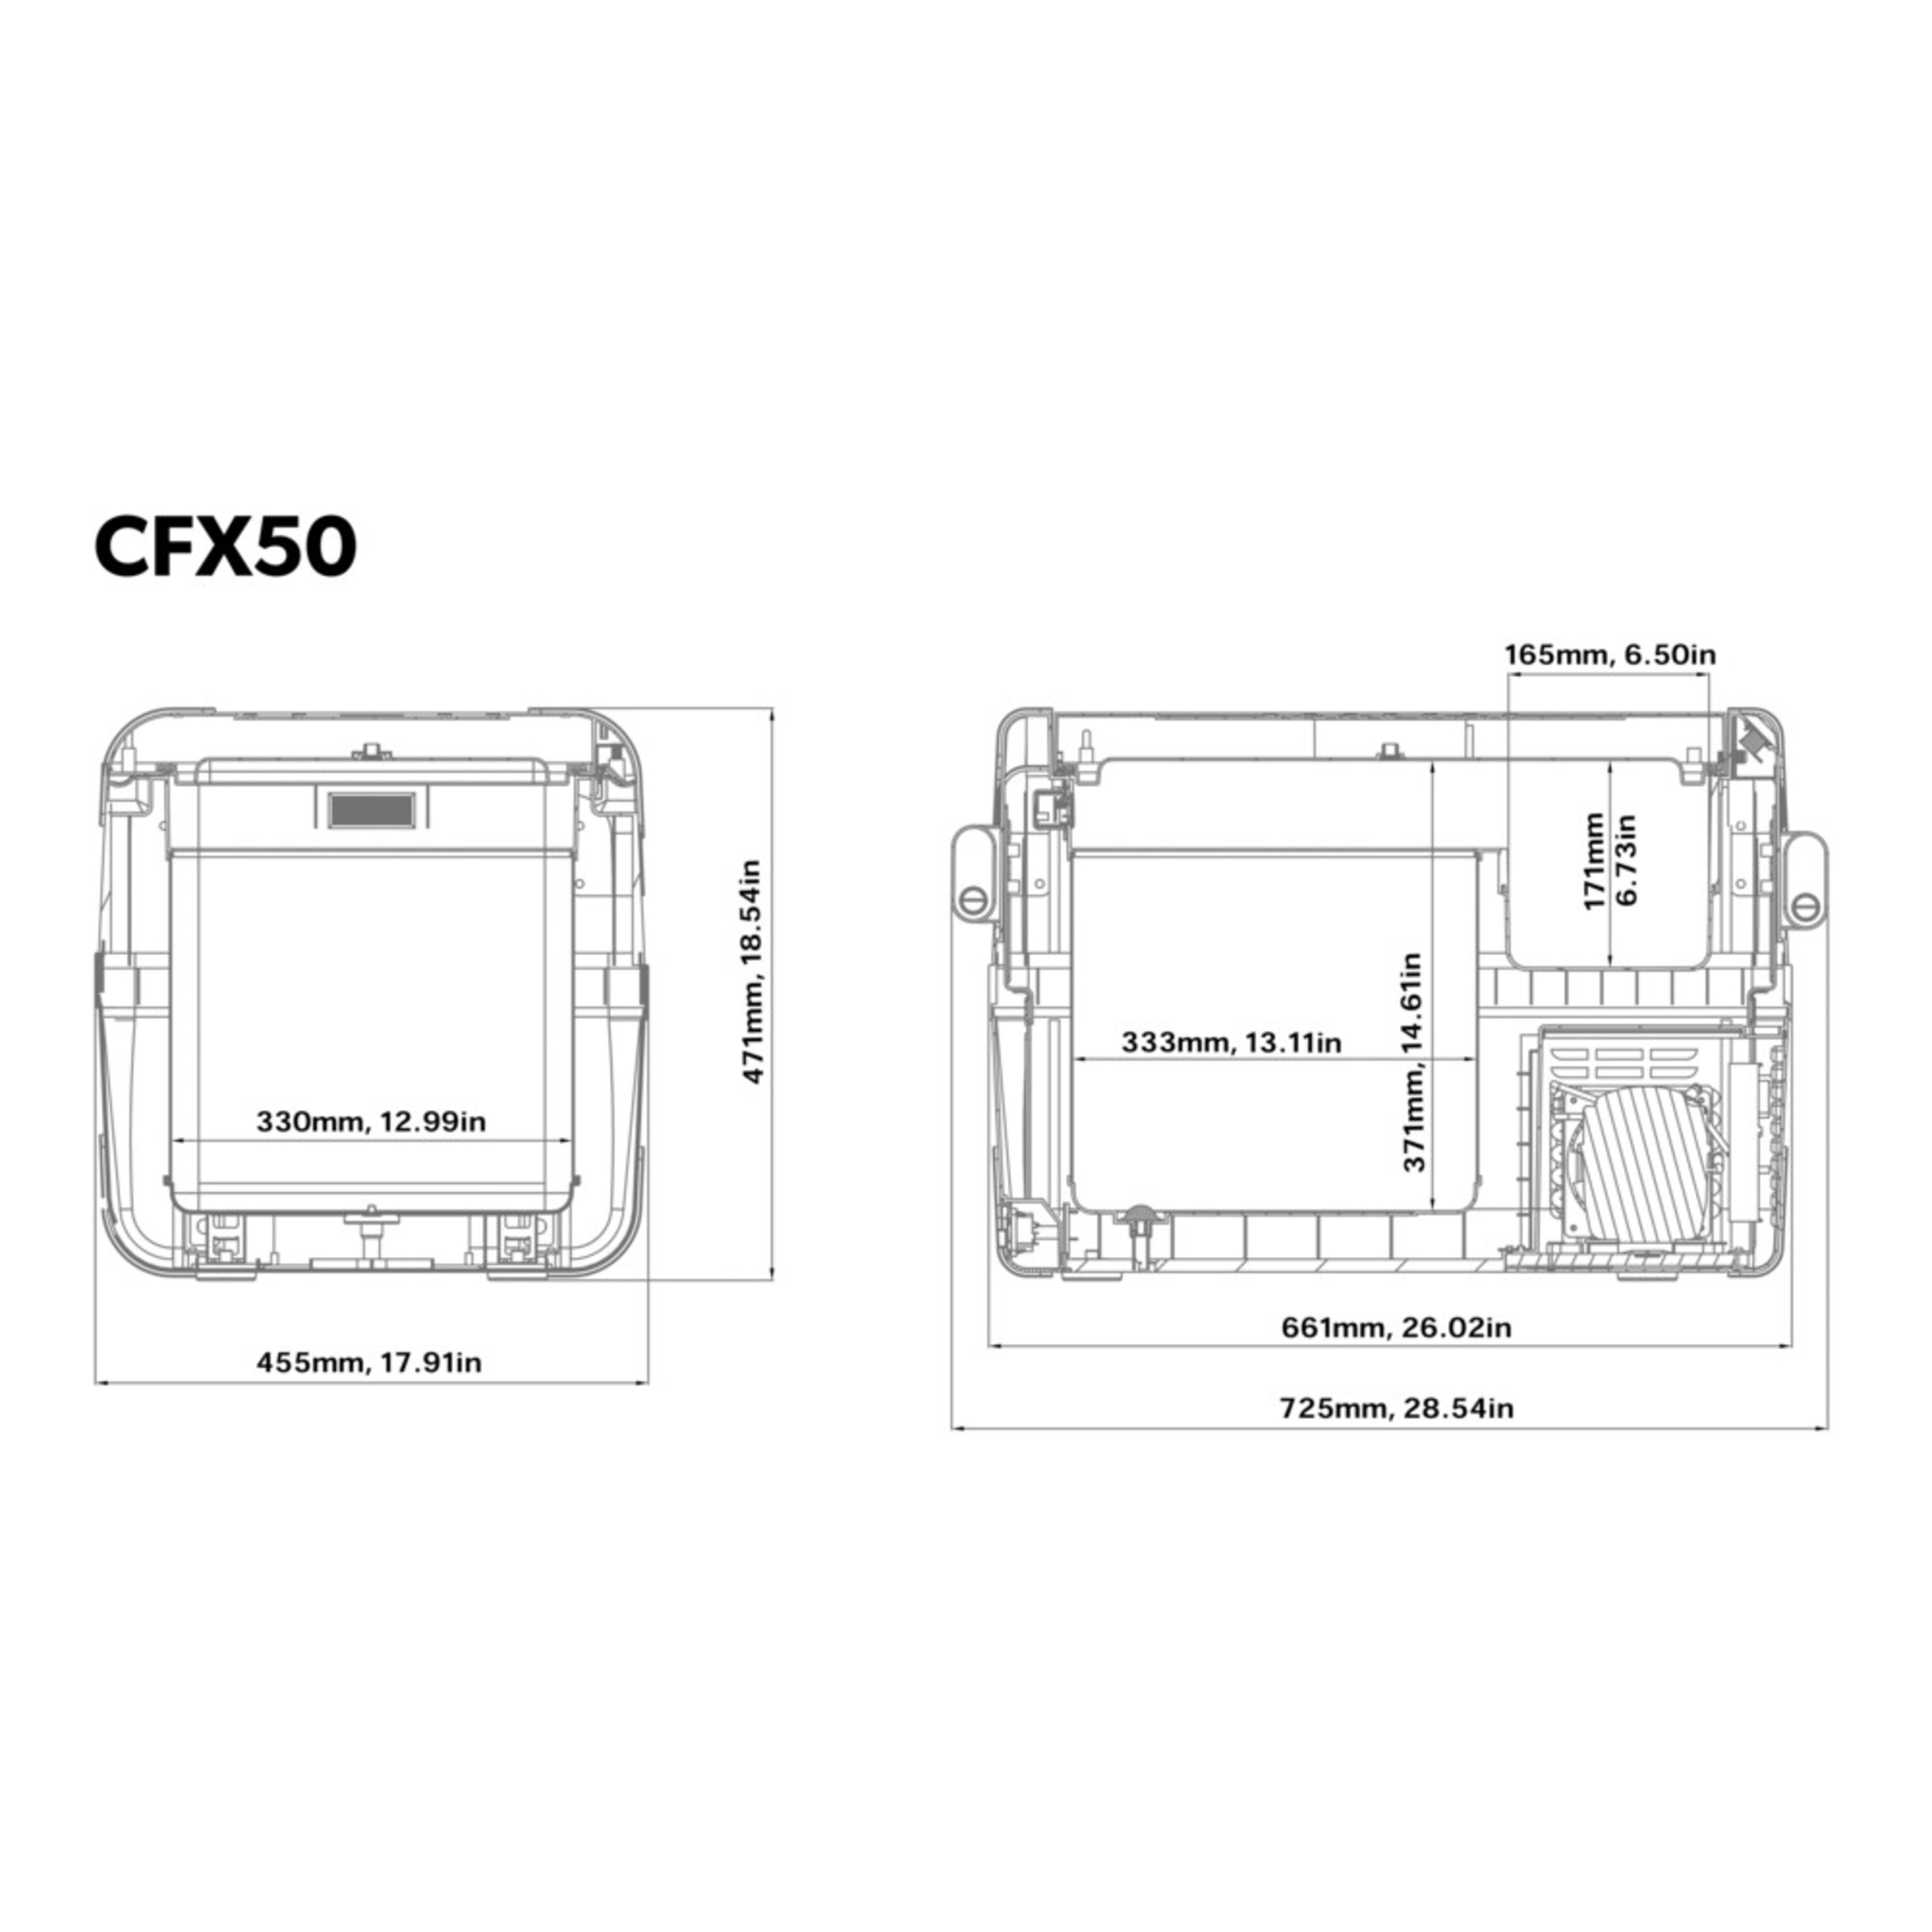 hight resolution of cfx 50w dimensions